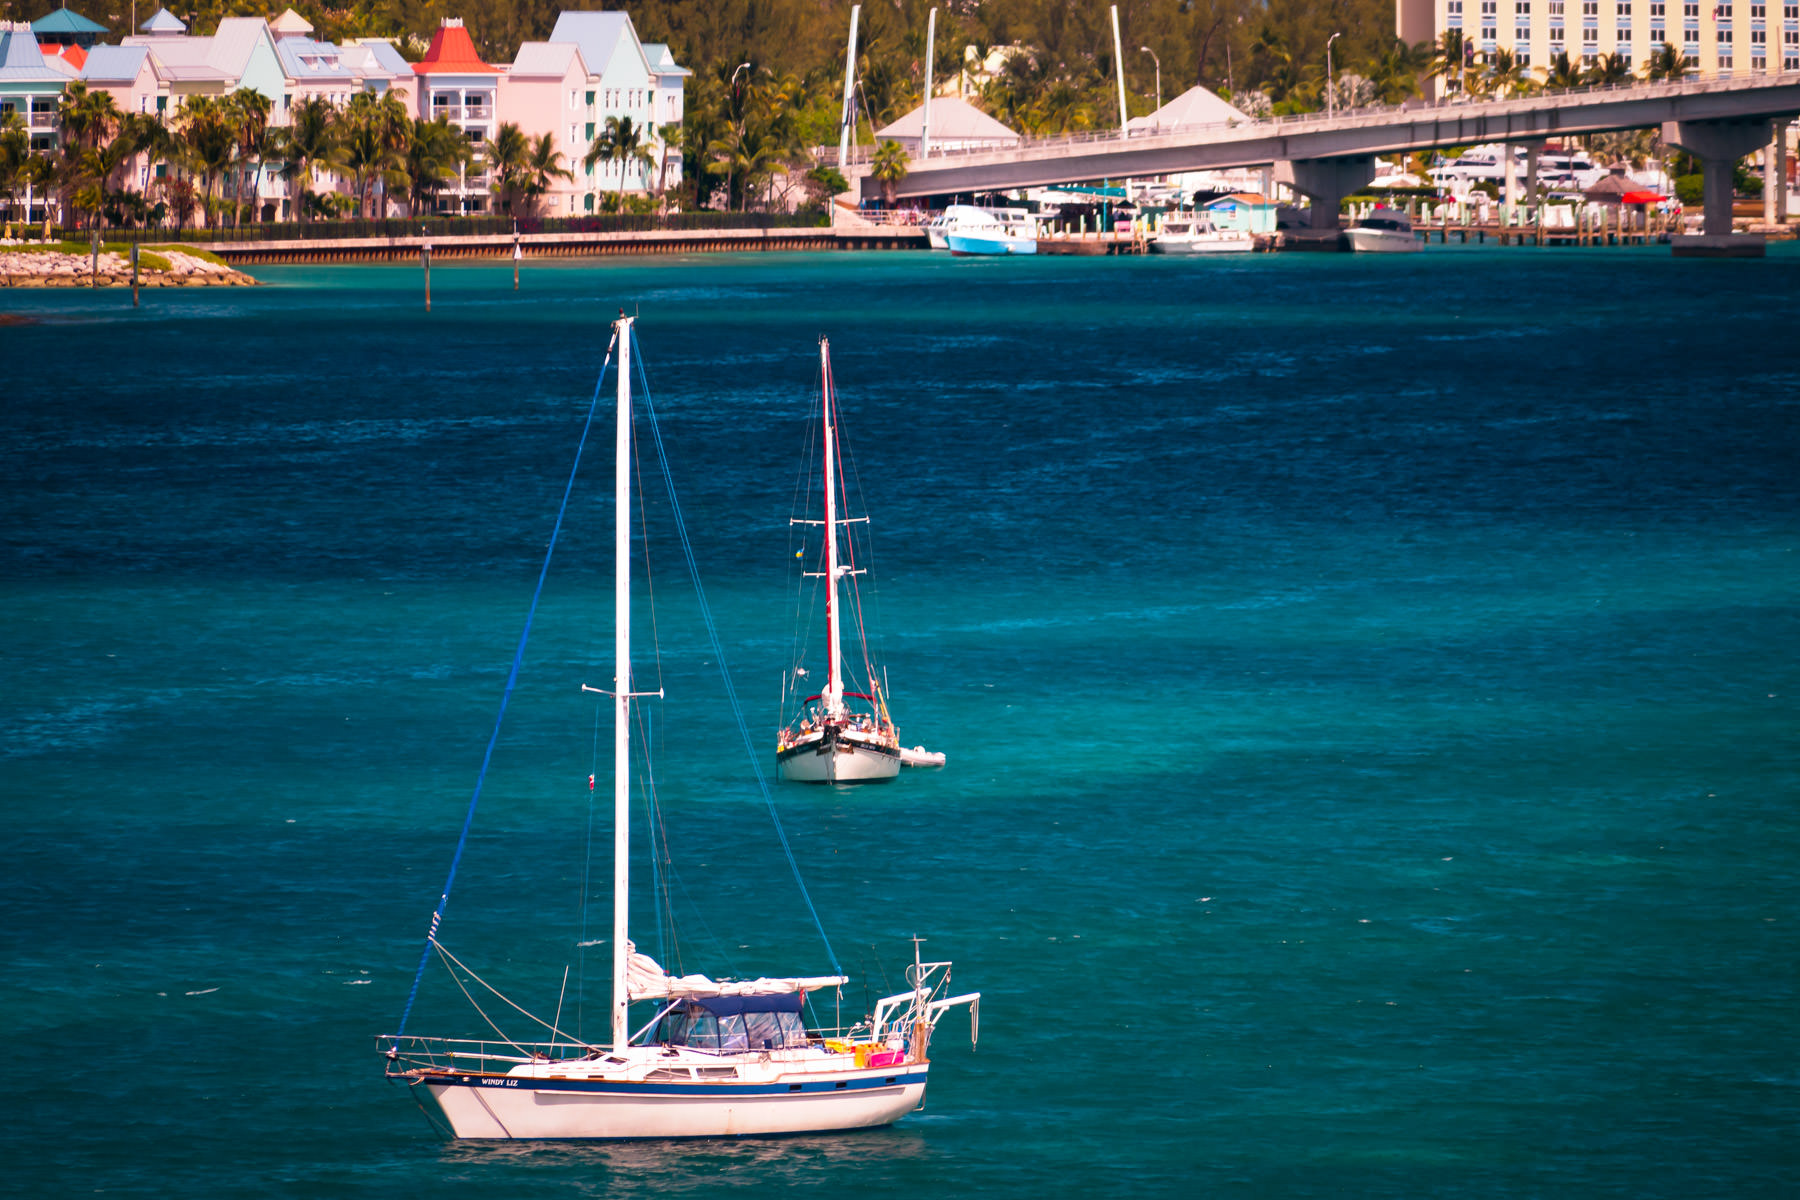 Two sailboats float in the harbour at Nassau, Bahamas.